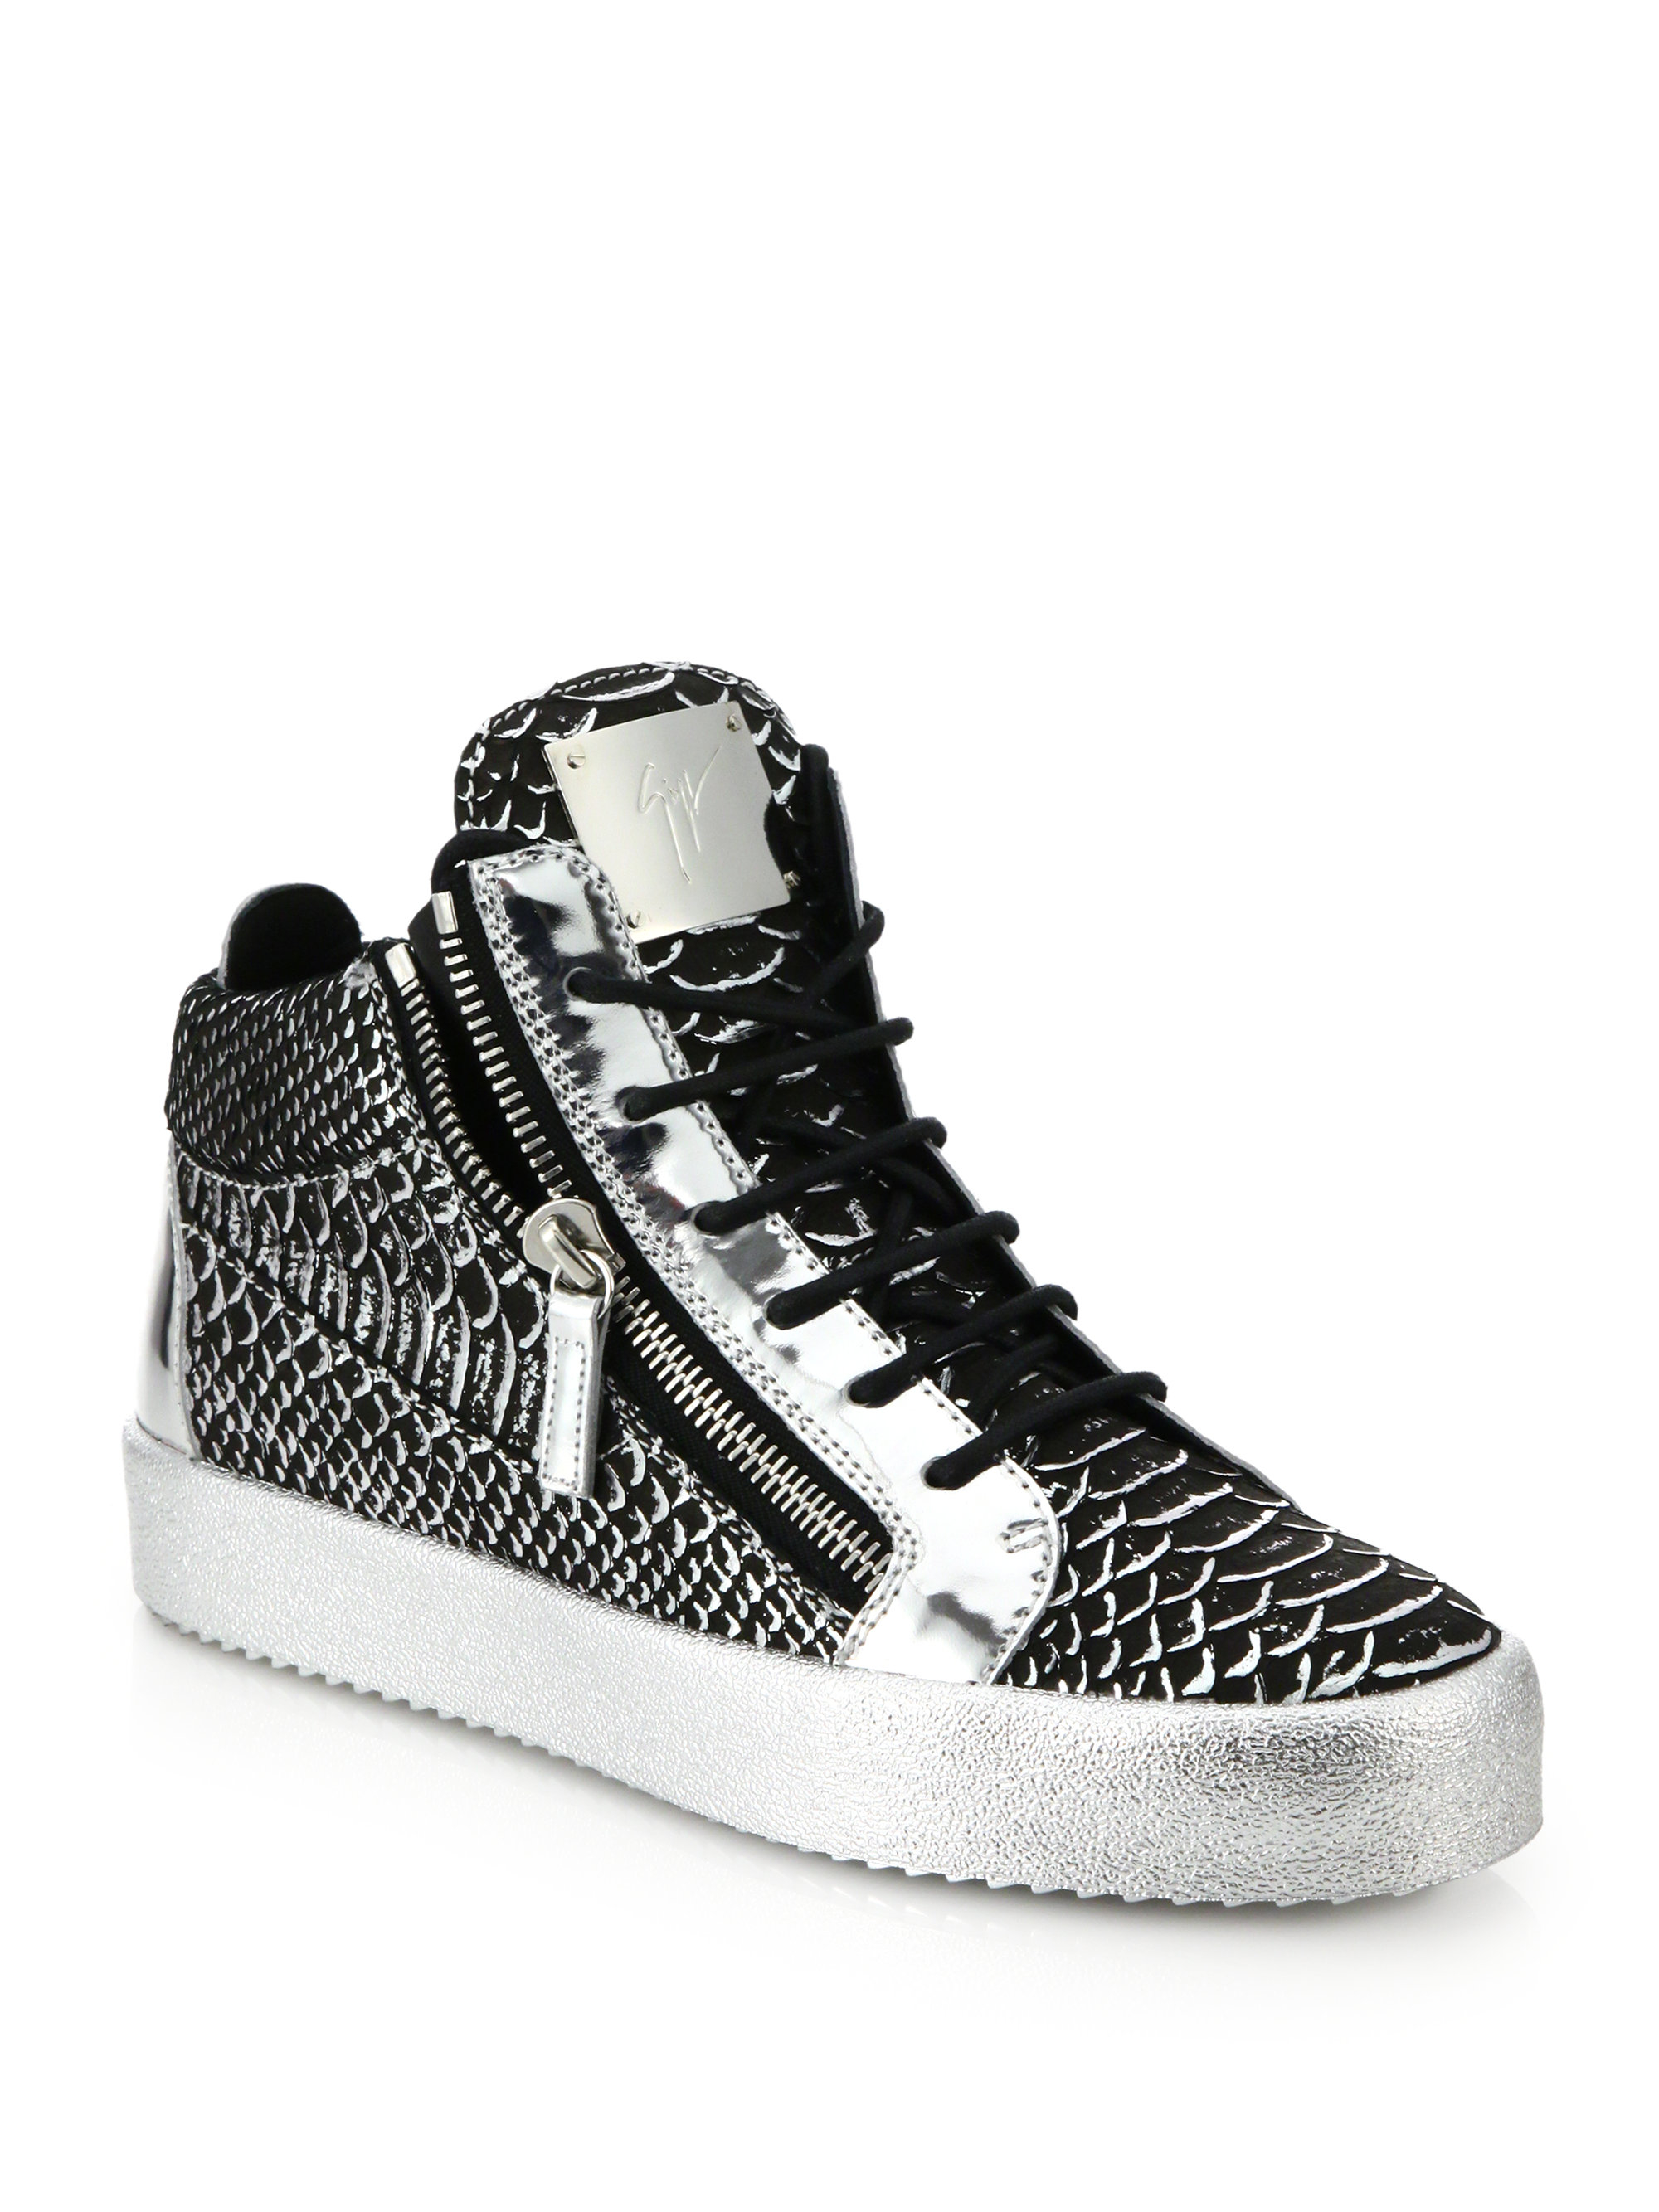 ed6684a2ac0fcc Lyst - Giuseppe Zanotti Embossed Leather Double-zip Sneakers in ...